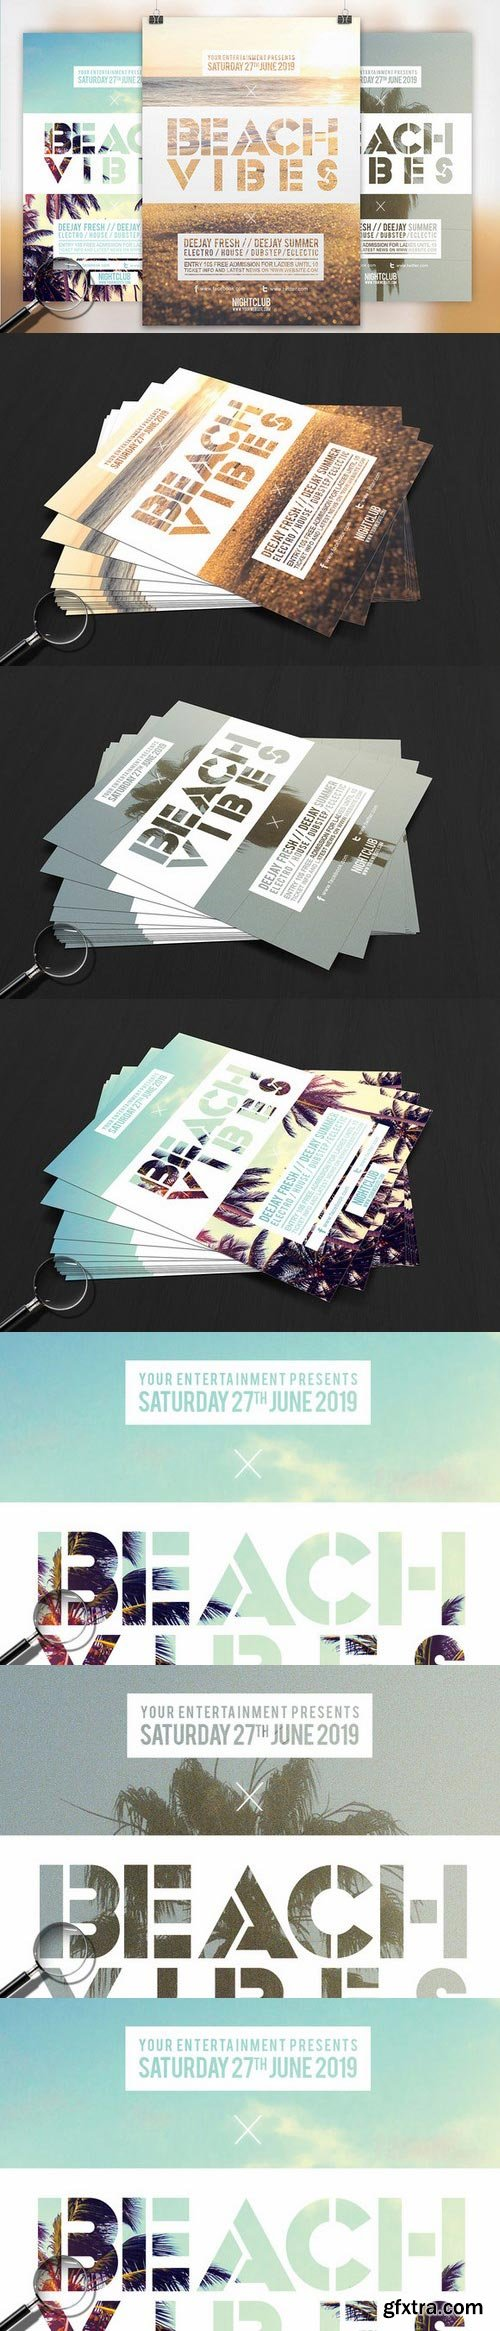 CM - Beach Vibes | 3in1 Flyer Template 753420